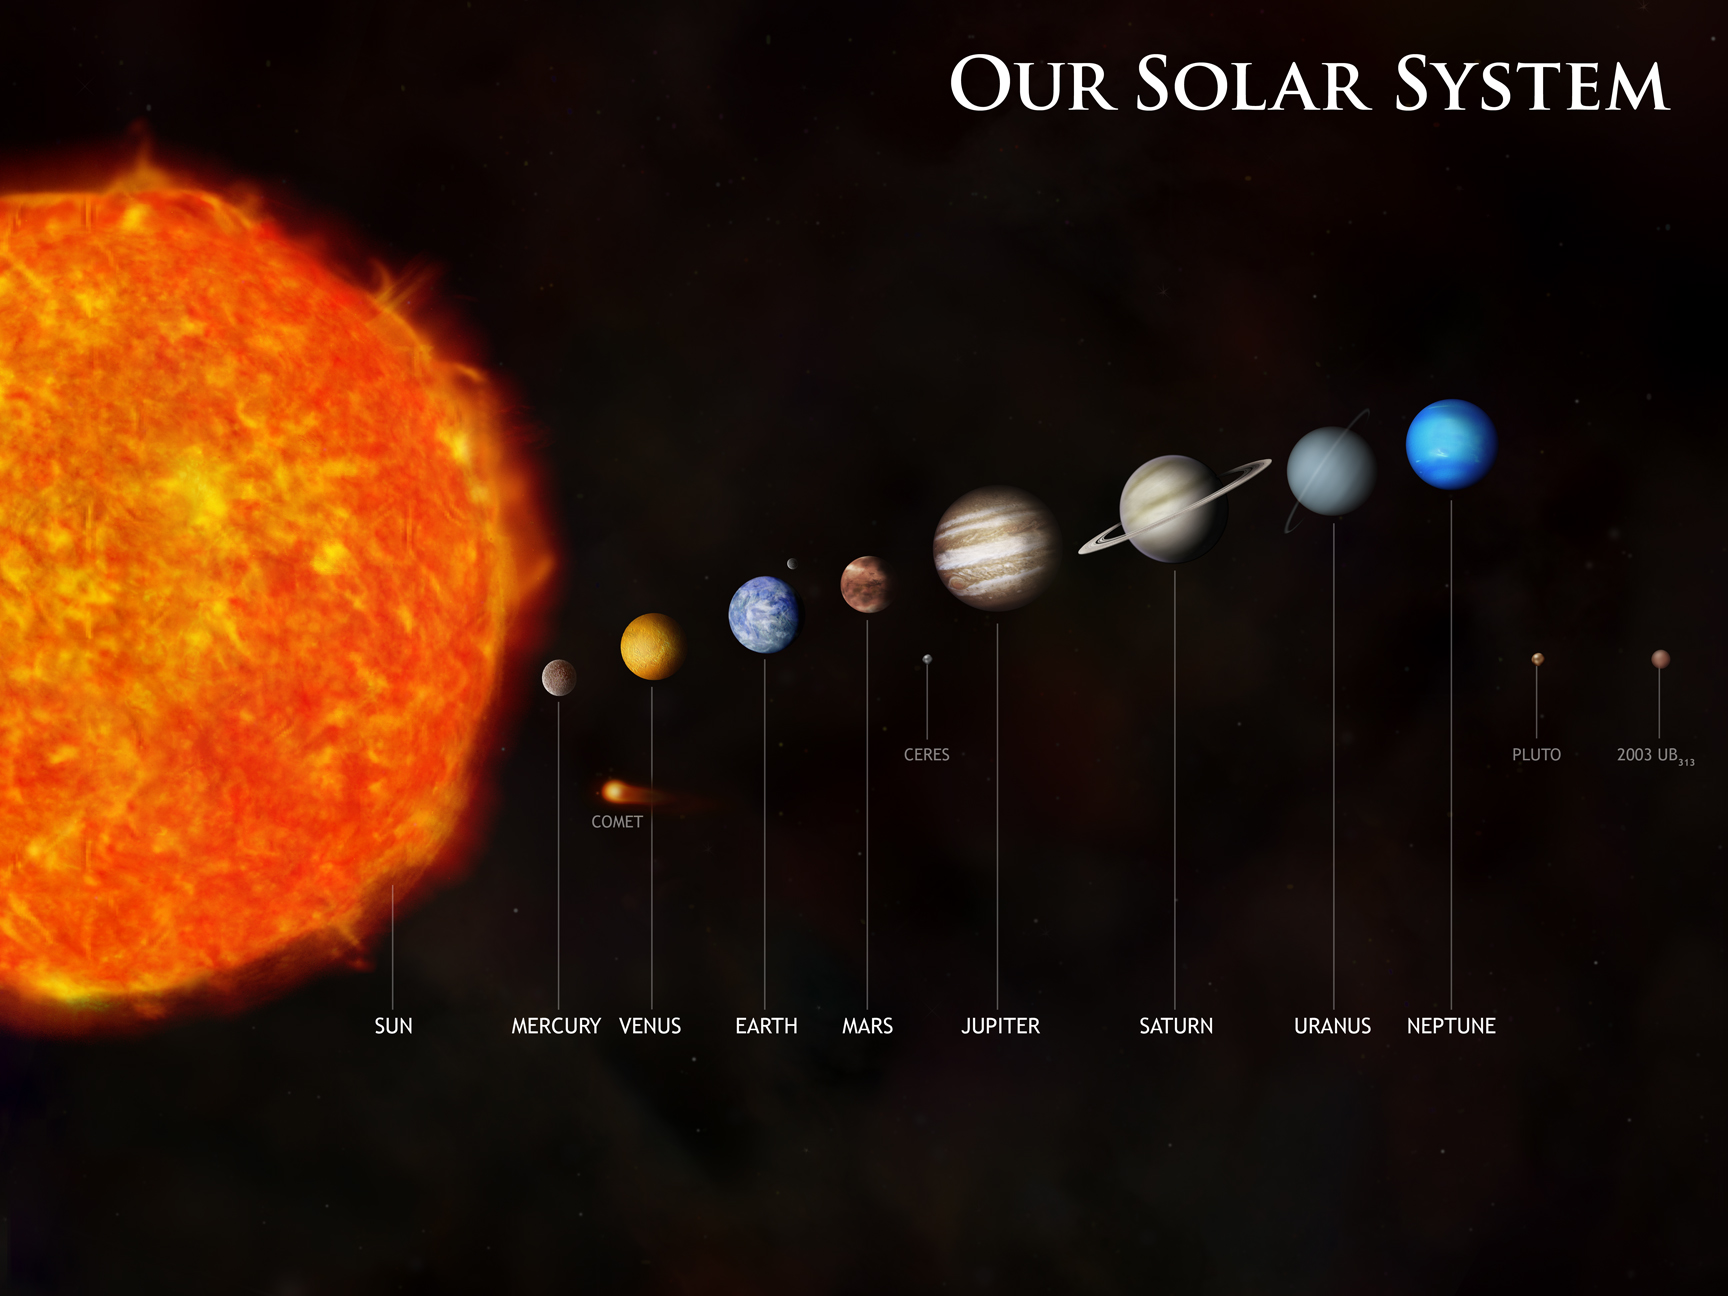 info about the solar system - photo #14